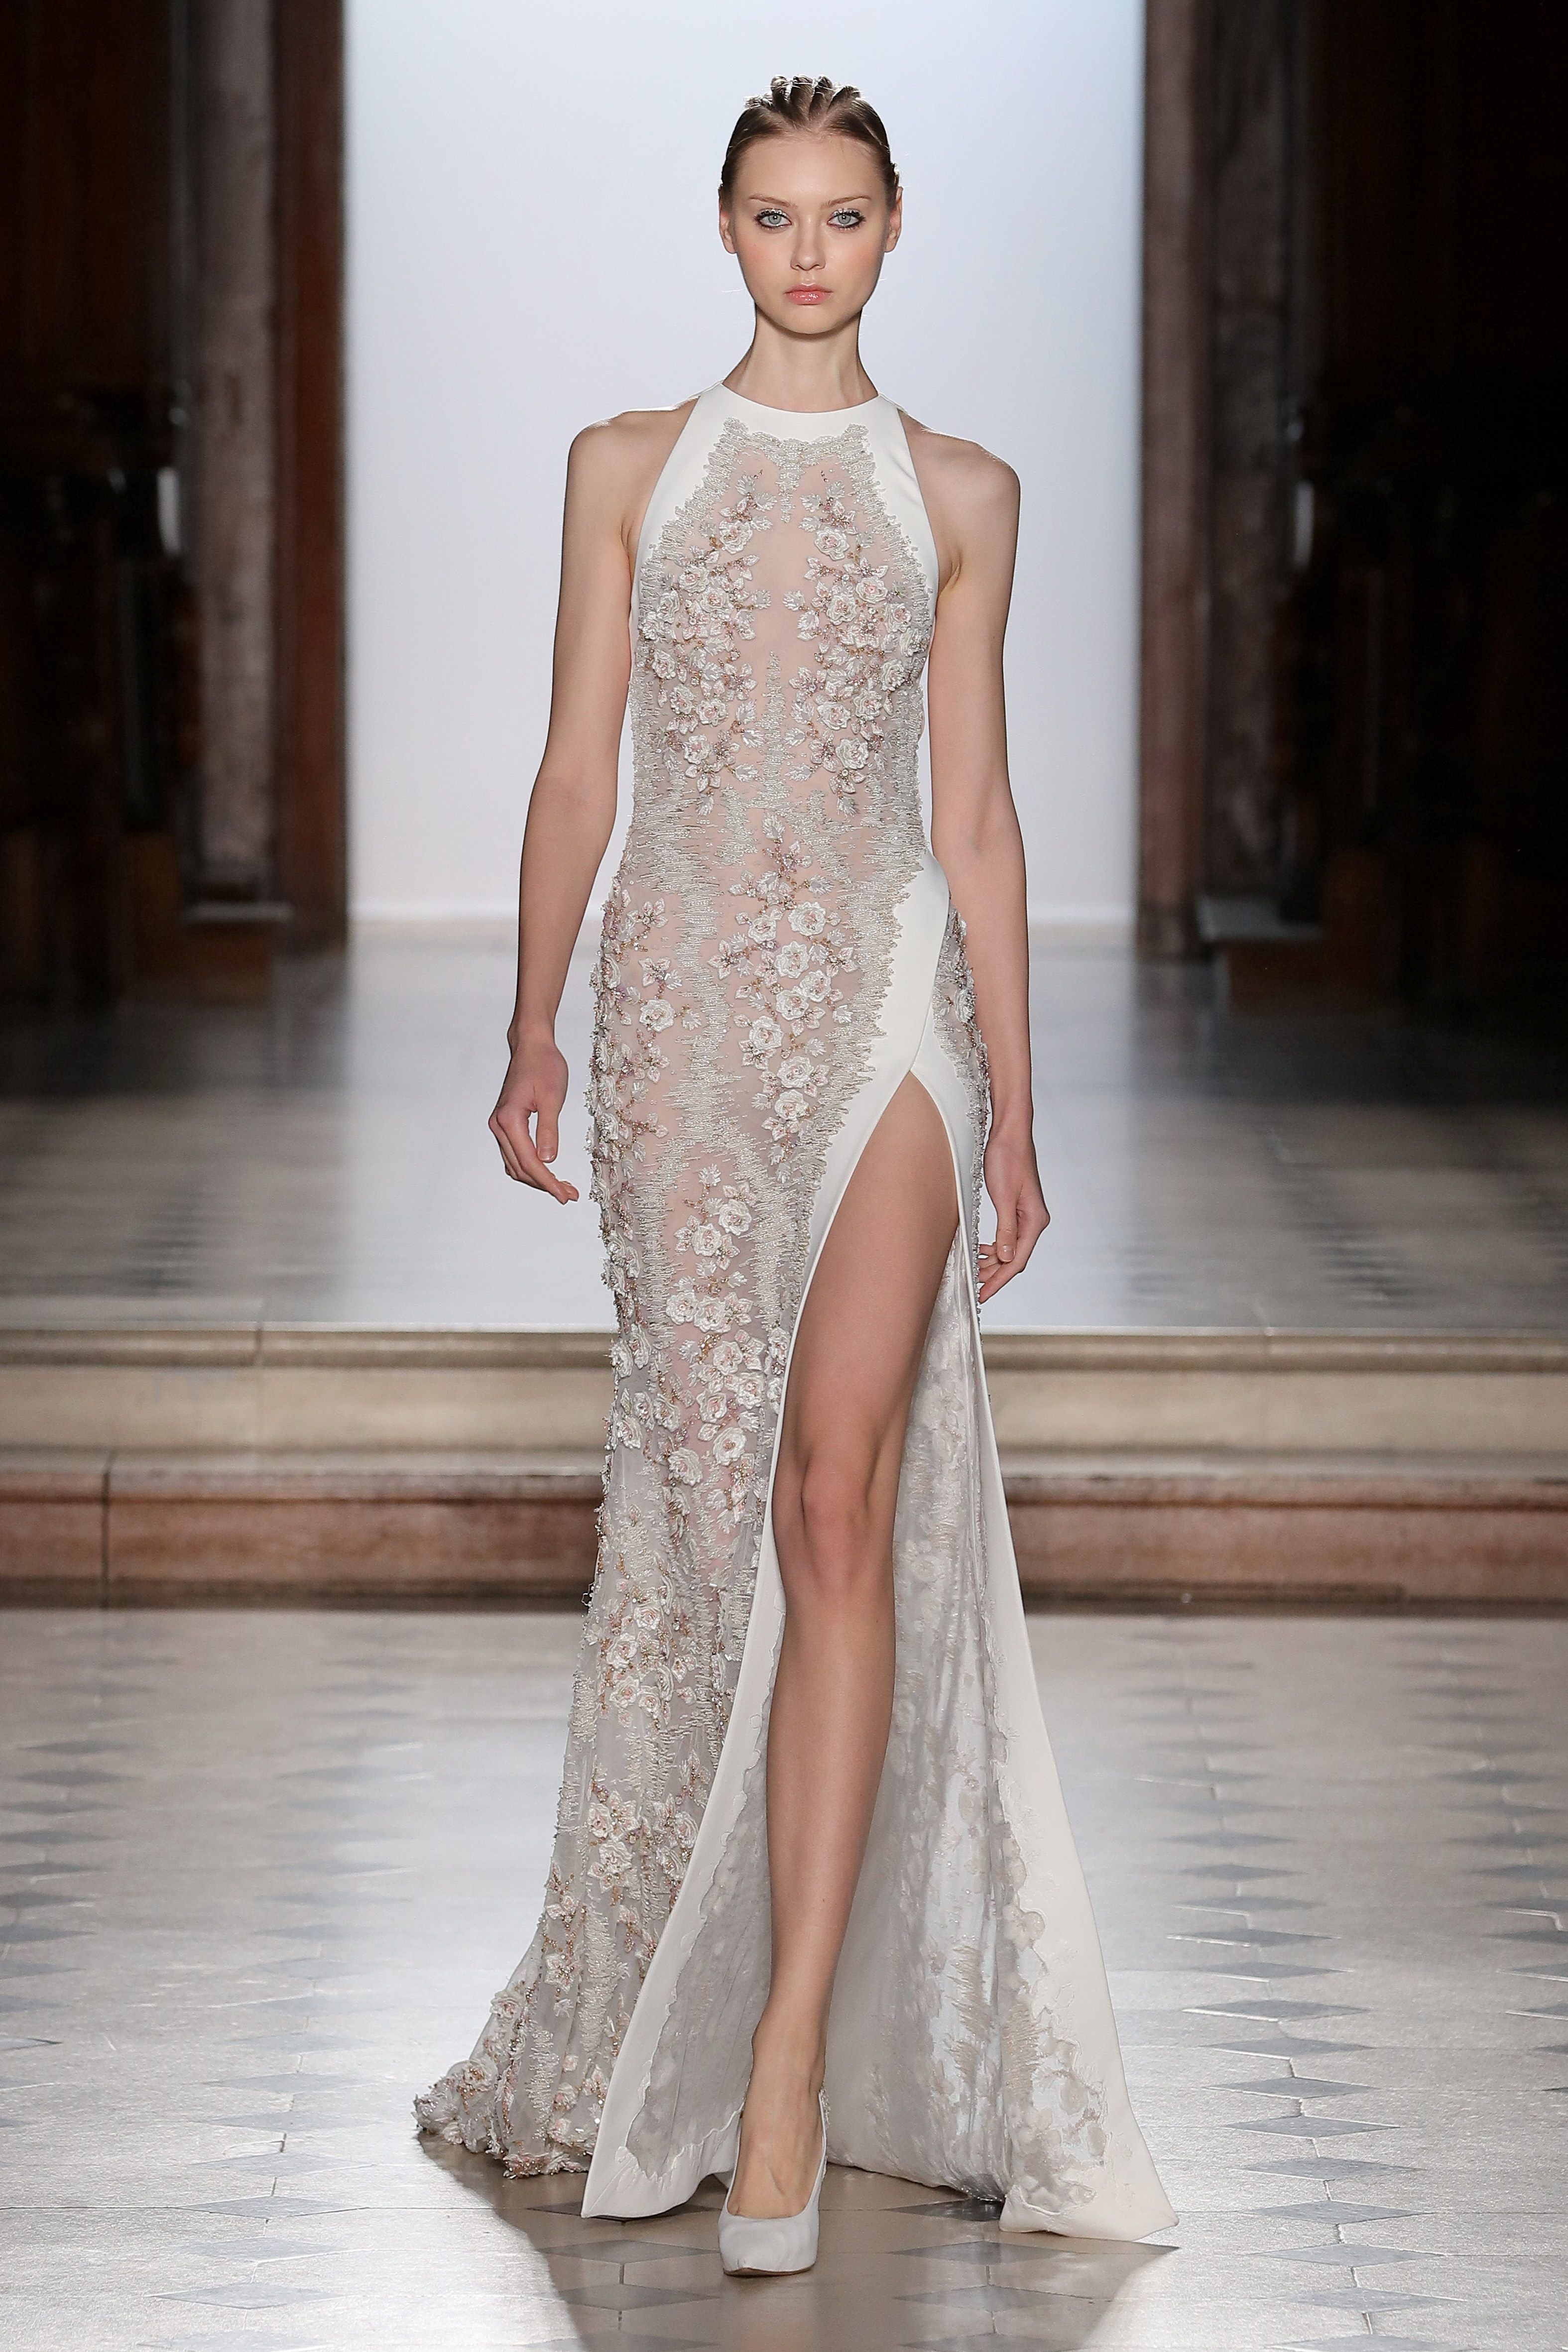 Tony ward couture i spring summer i style ium not the